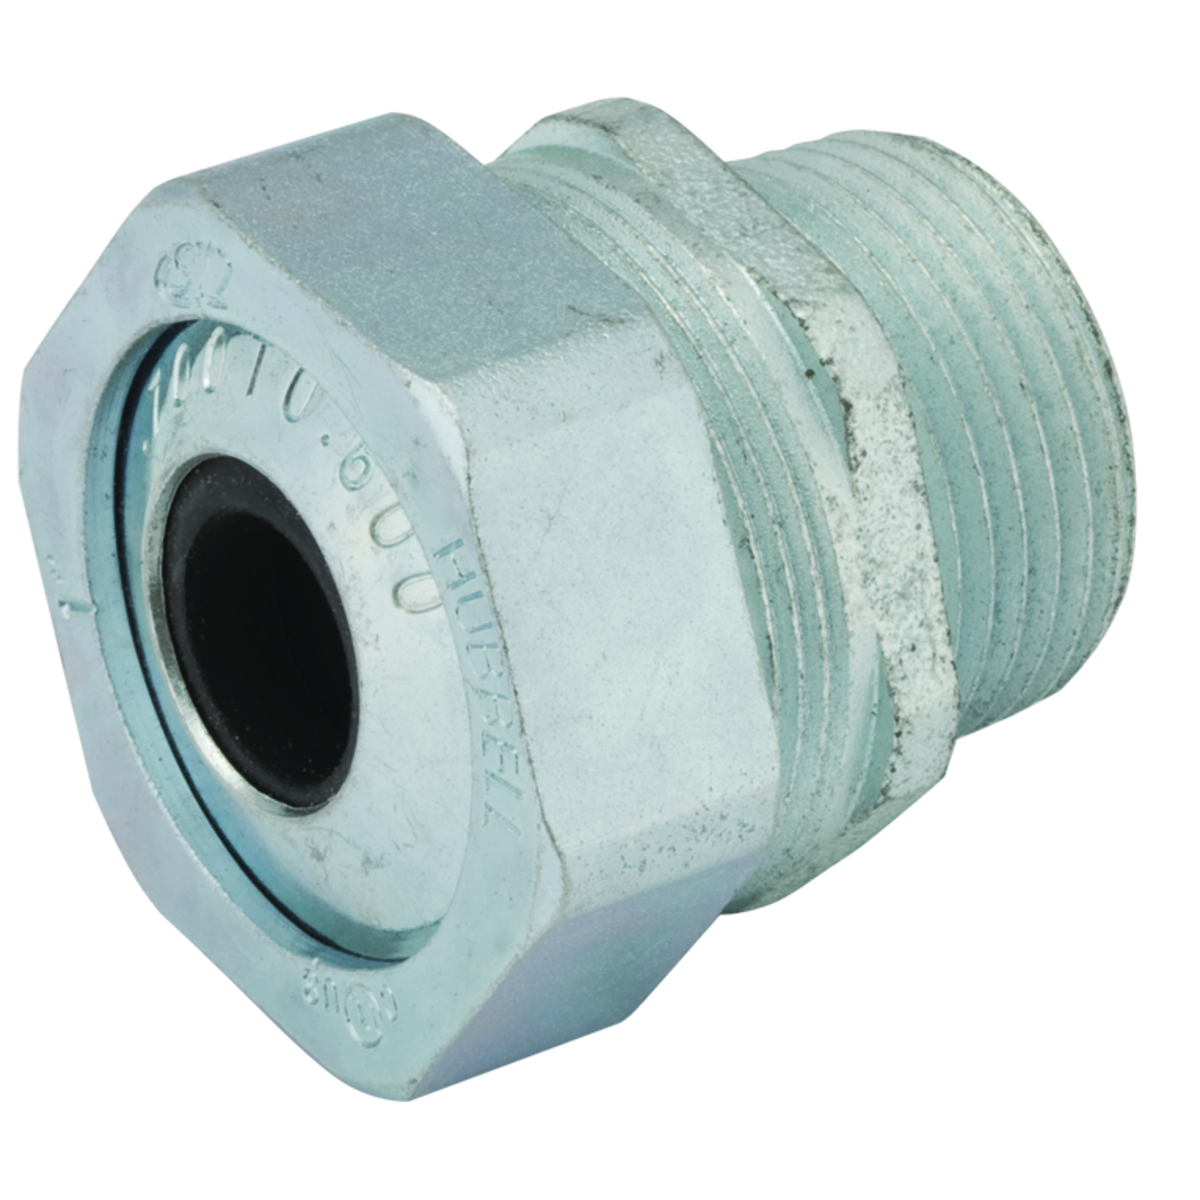 Hubbell-Raco 3704-1 Cord Connector